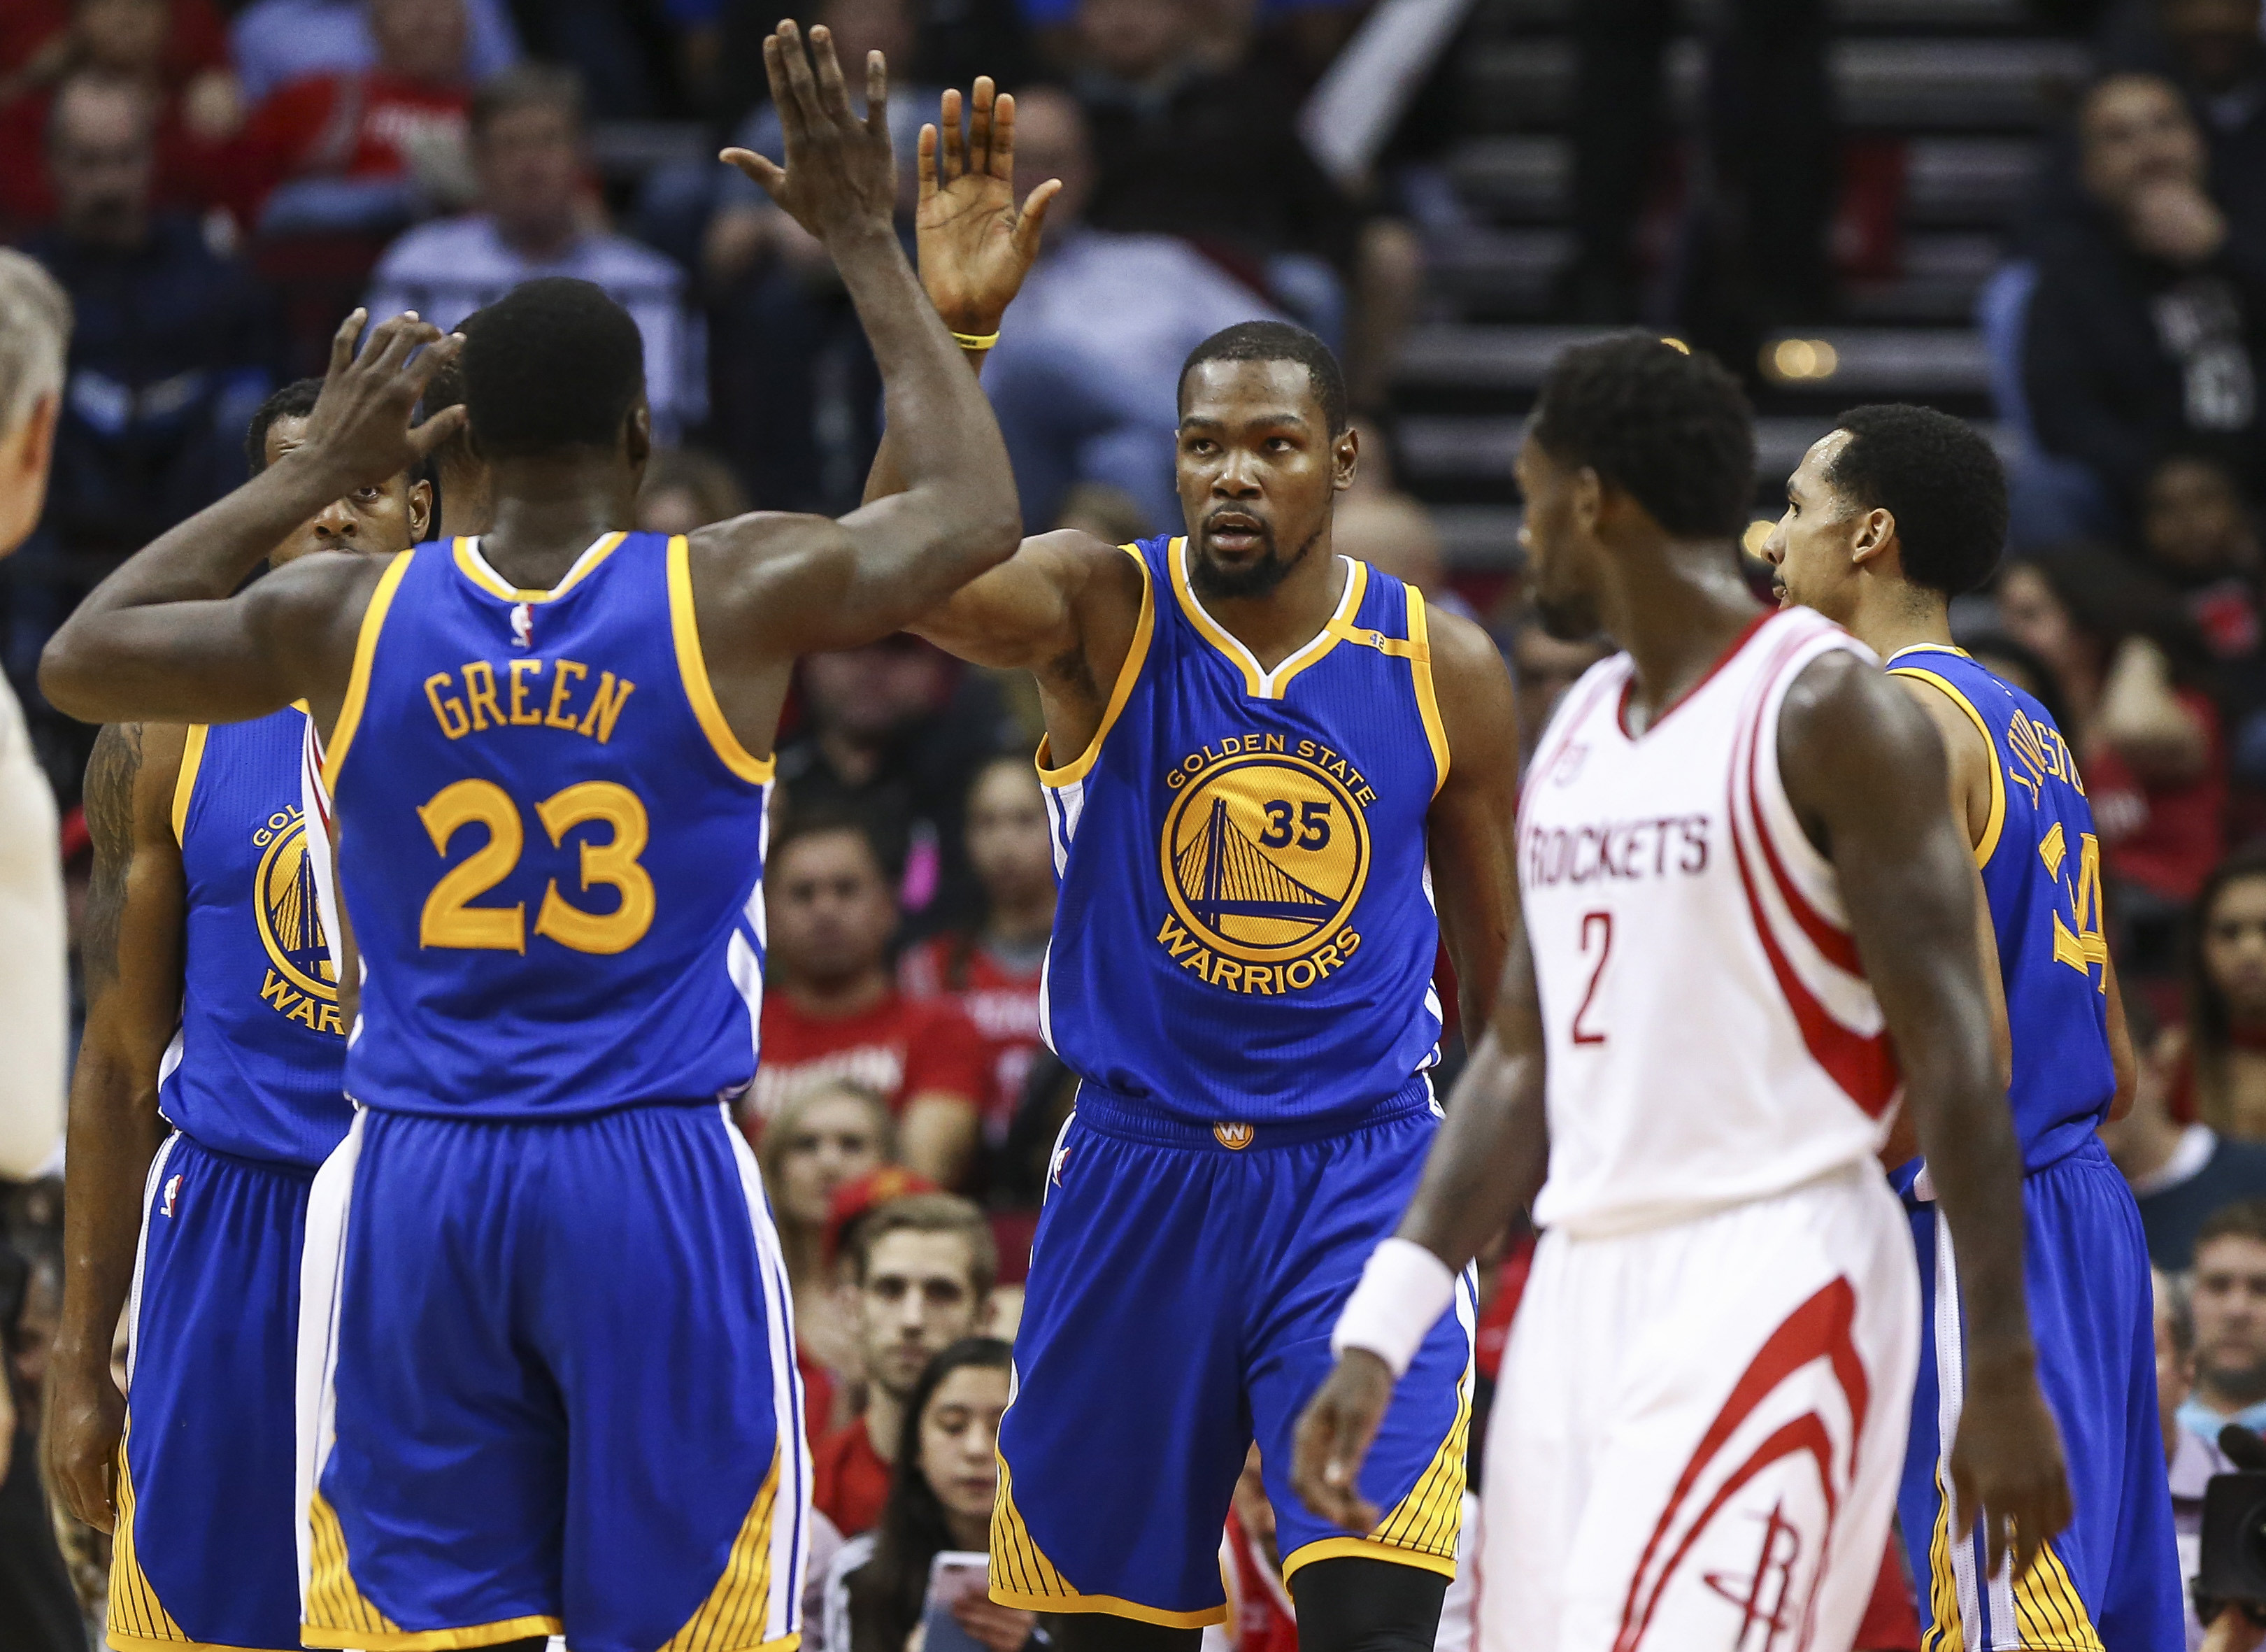 9826366-nba-golden-state-warriors-at-houston-rockets